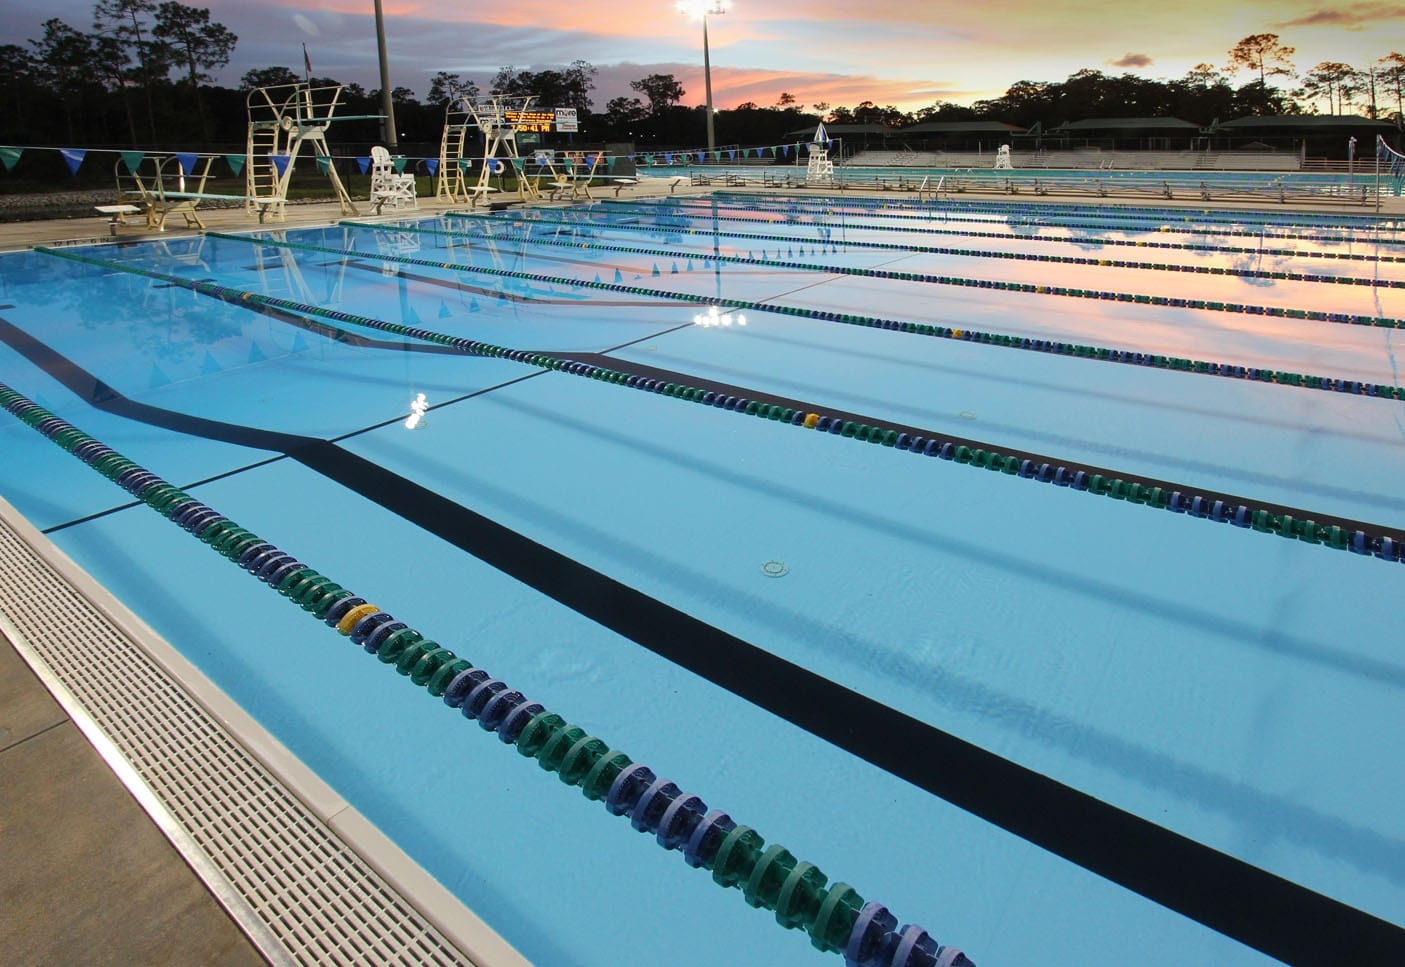 FGCU_Aquatic_Center_0000_Layer 4